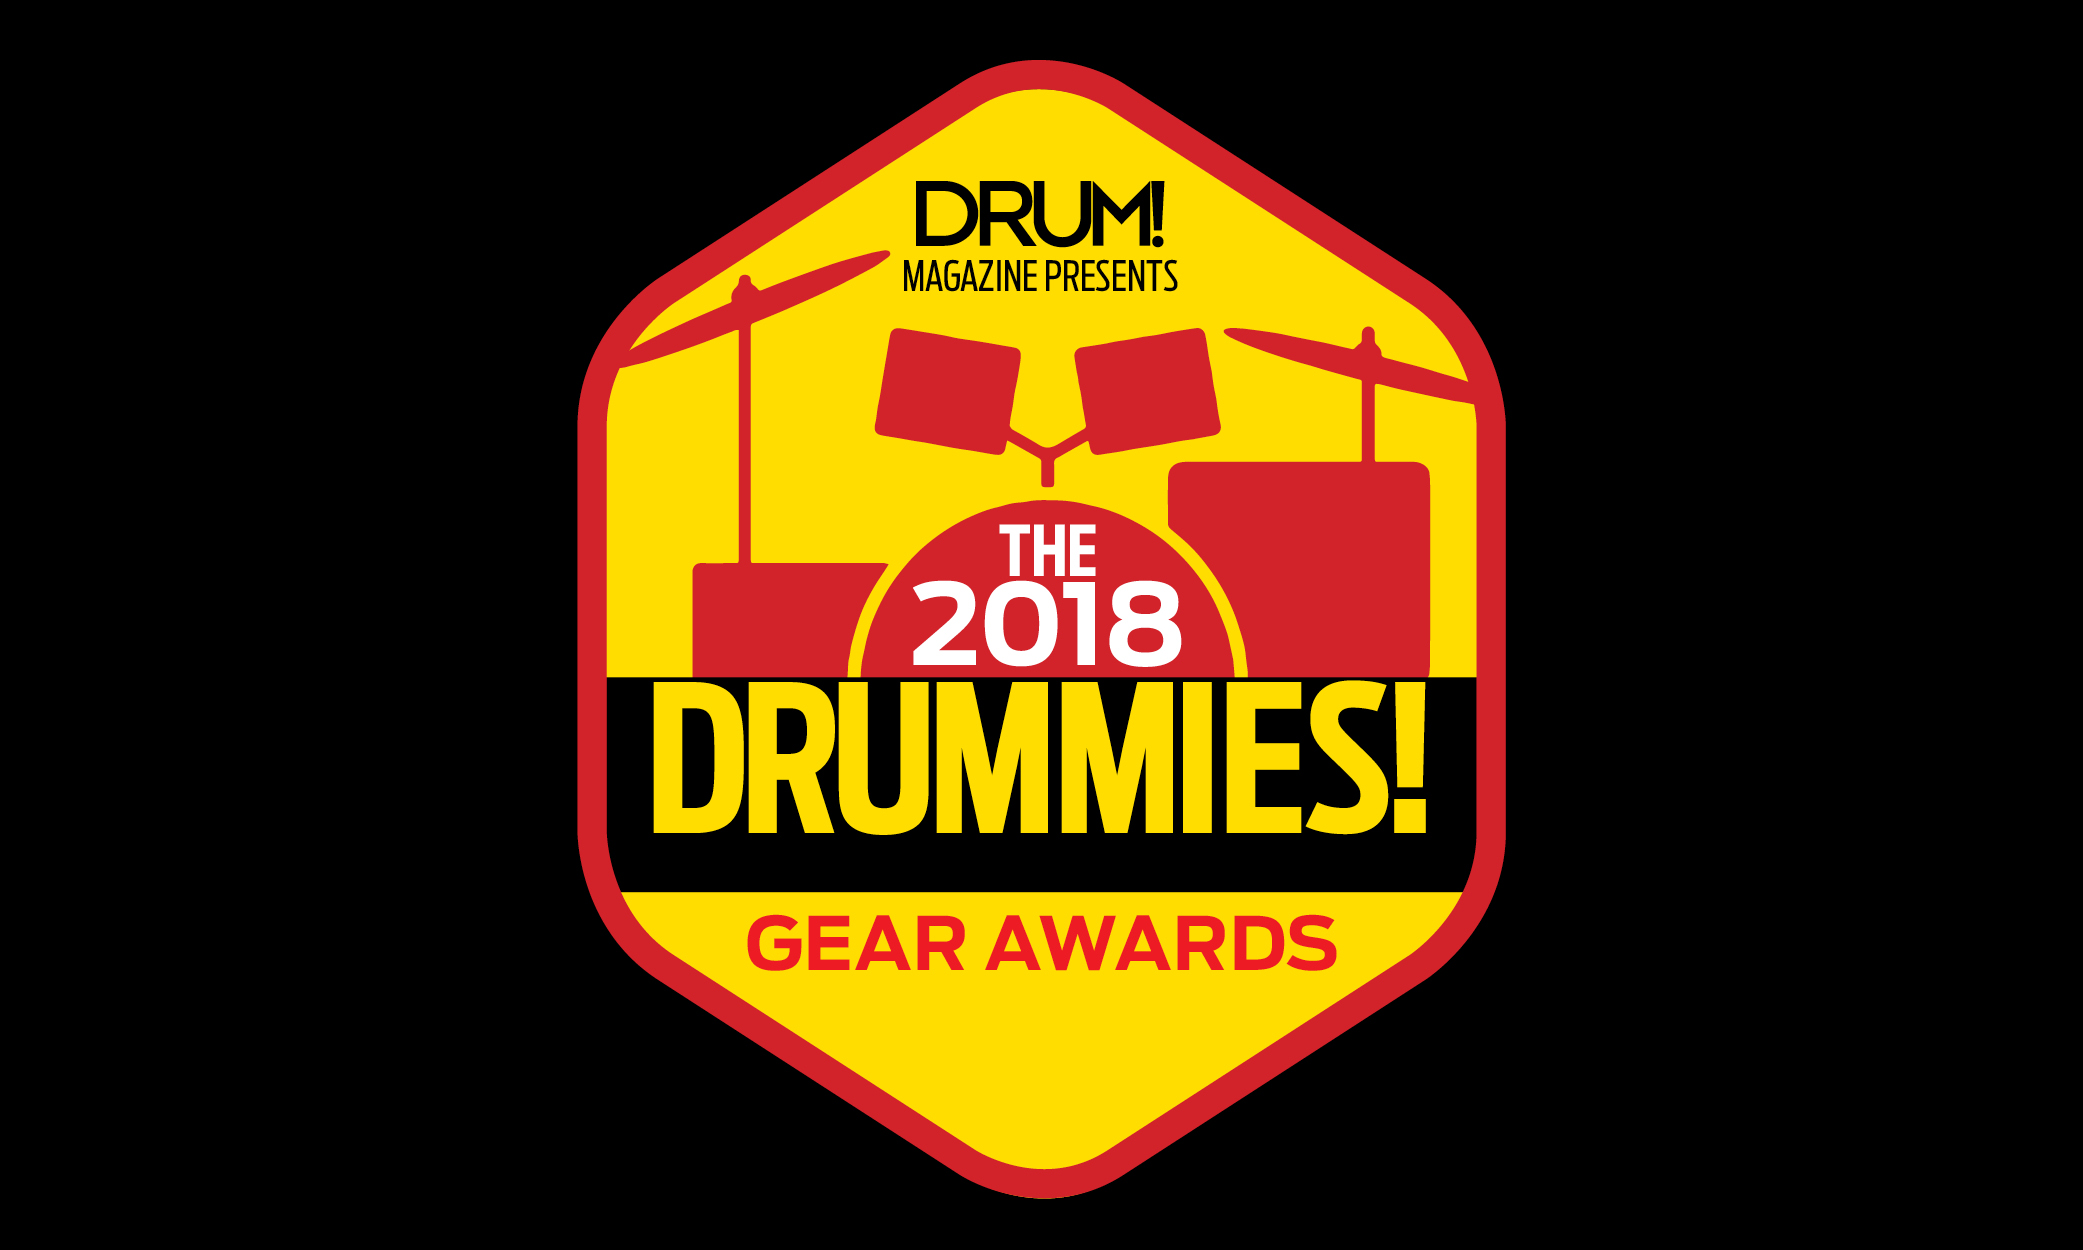 drummies 2018 featured image_2